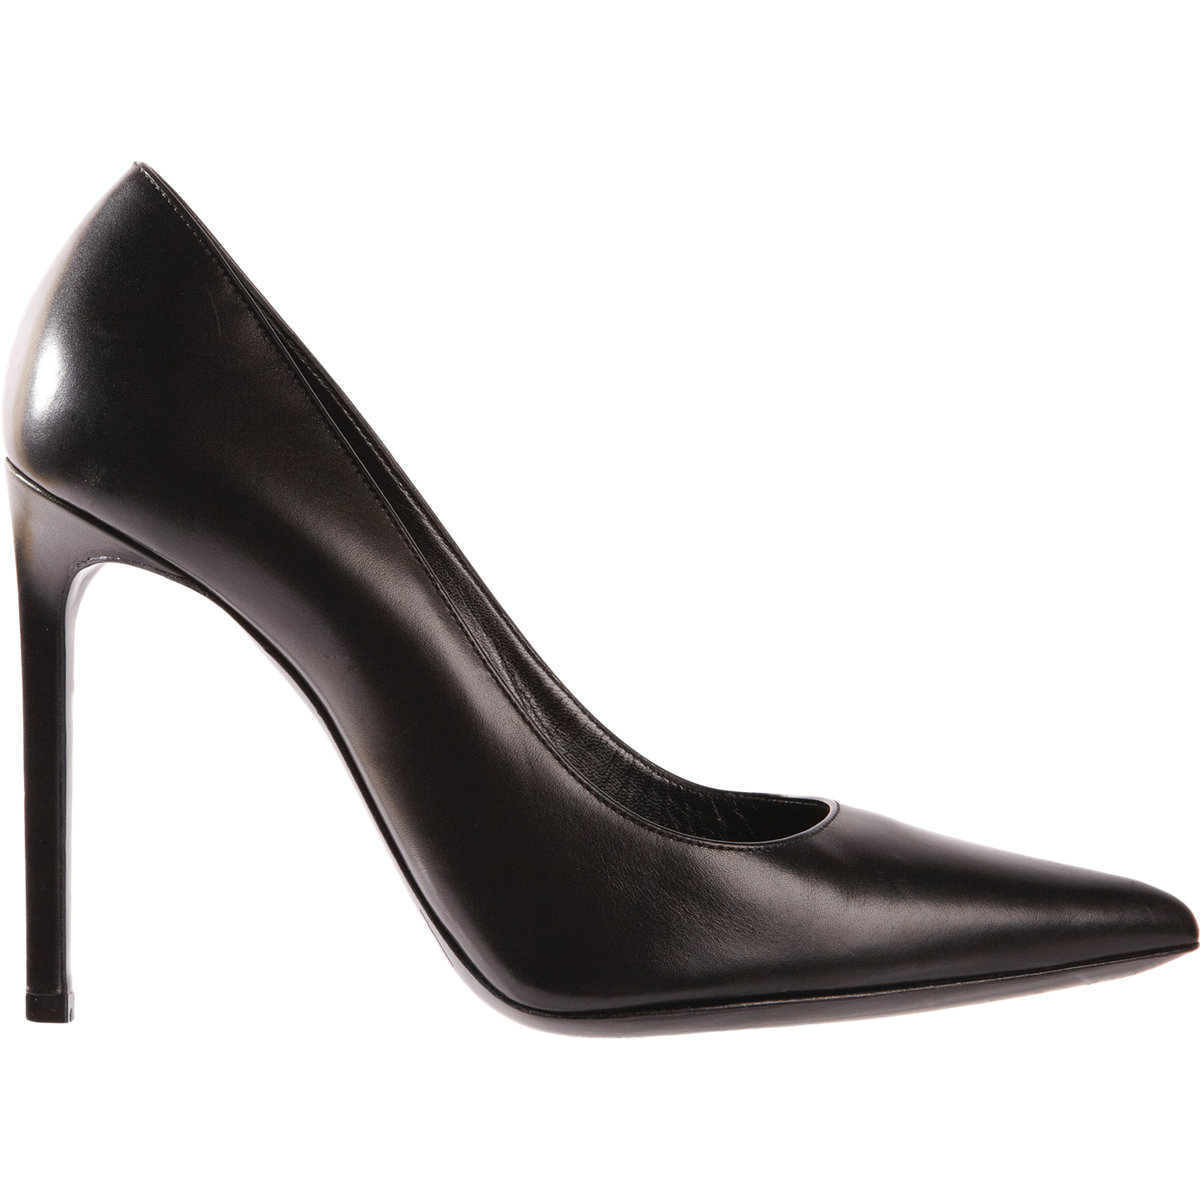 Saint laurent paris classic pump at barneys.com